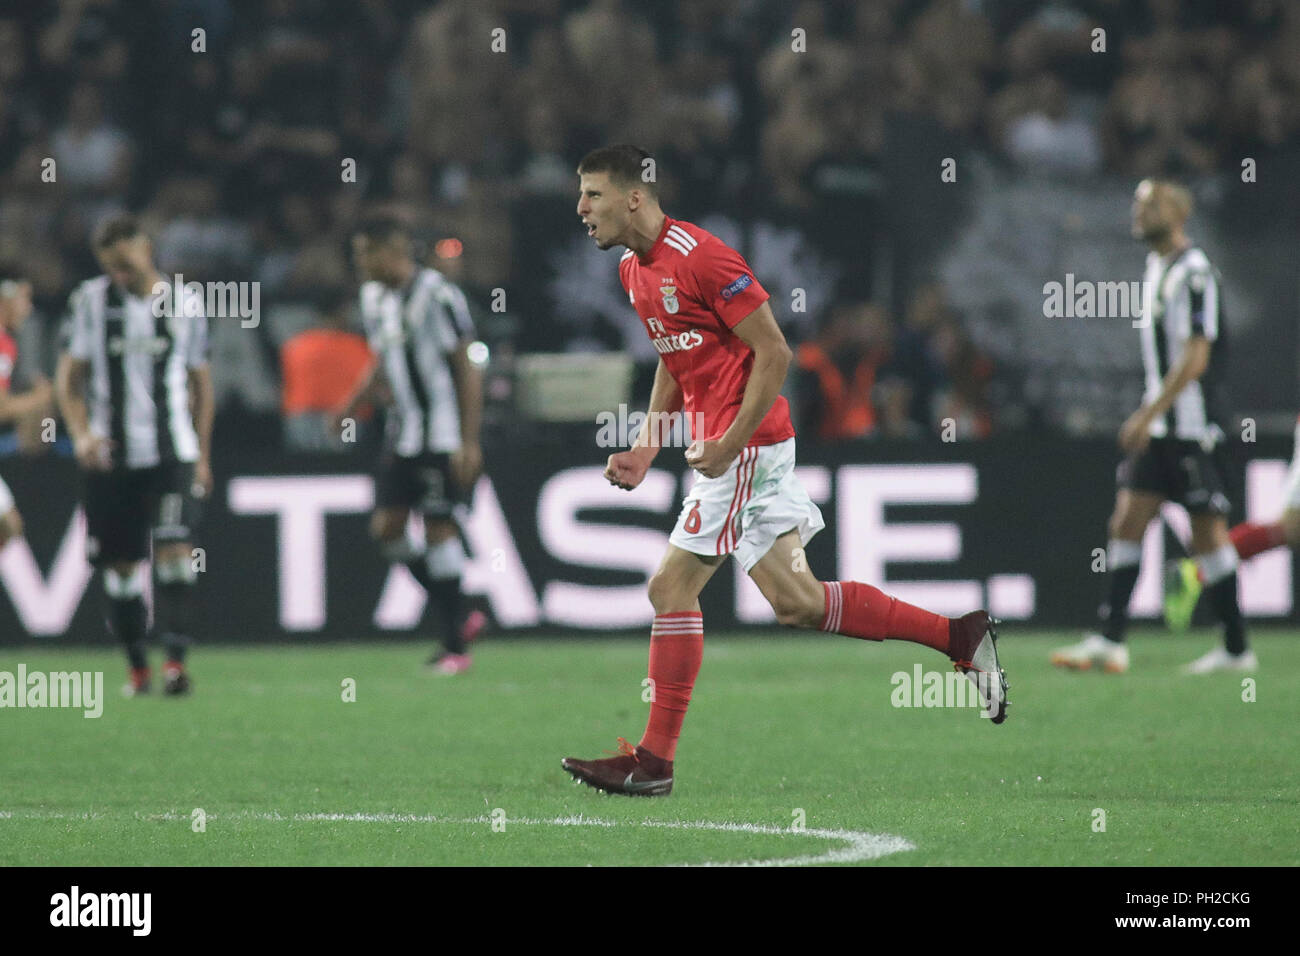 Arte Cafe Benfica Sl 1 Sl 2 Stock Photos Sl 1 Sl 2 Stock Images Page 3 Alamy